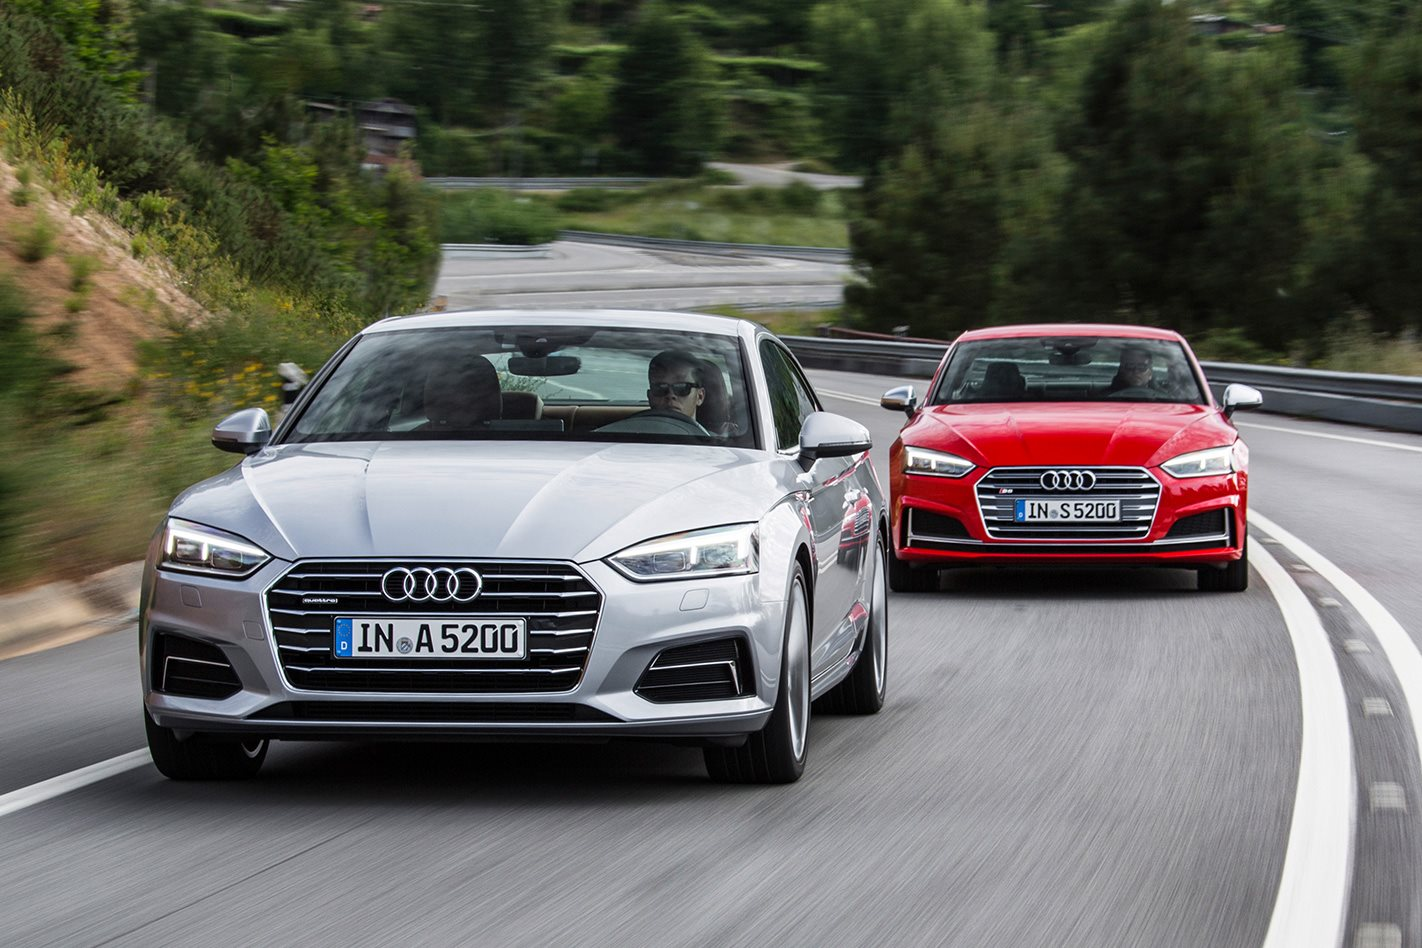 2017 audi a5 and s5 coupe review wheels. Black Bedroom Furniture Sets. Home Design Ideas